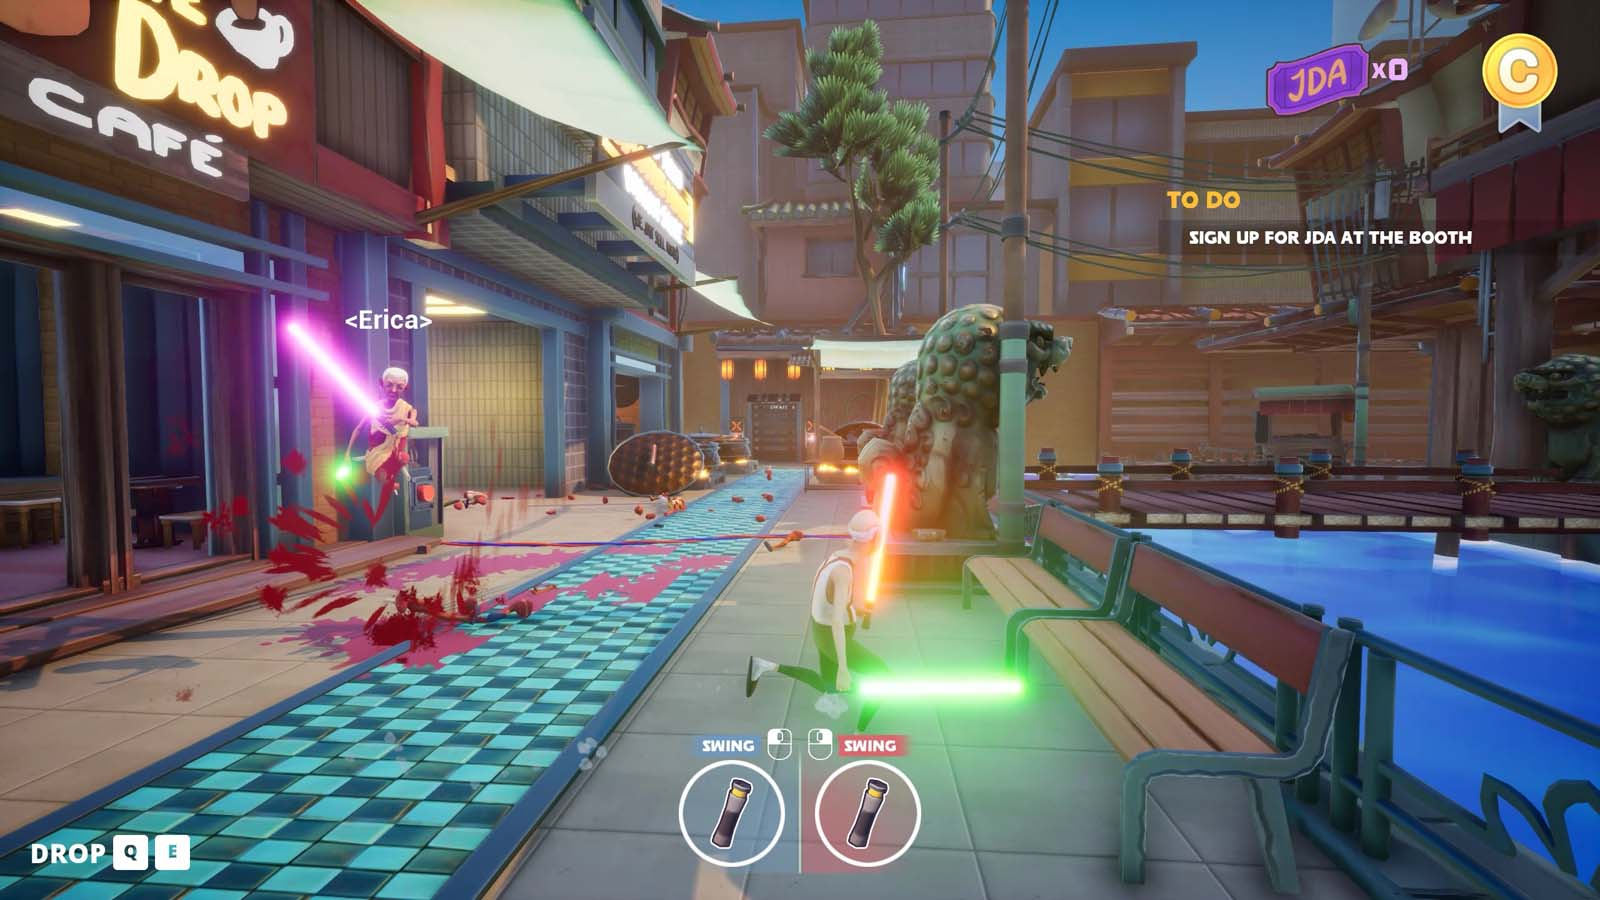 Old People Mayhem Sandbox 'Just Die Already' Coming Soon to PlayStation, Xbox and Nintendo Switch Alongside PC